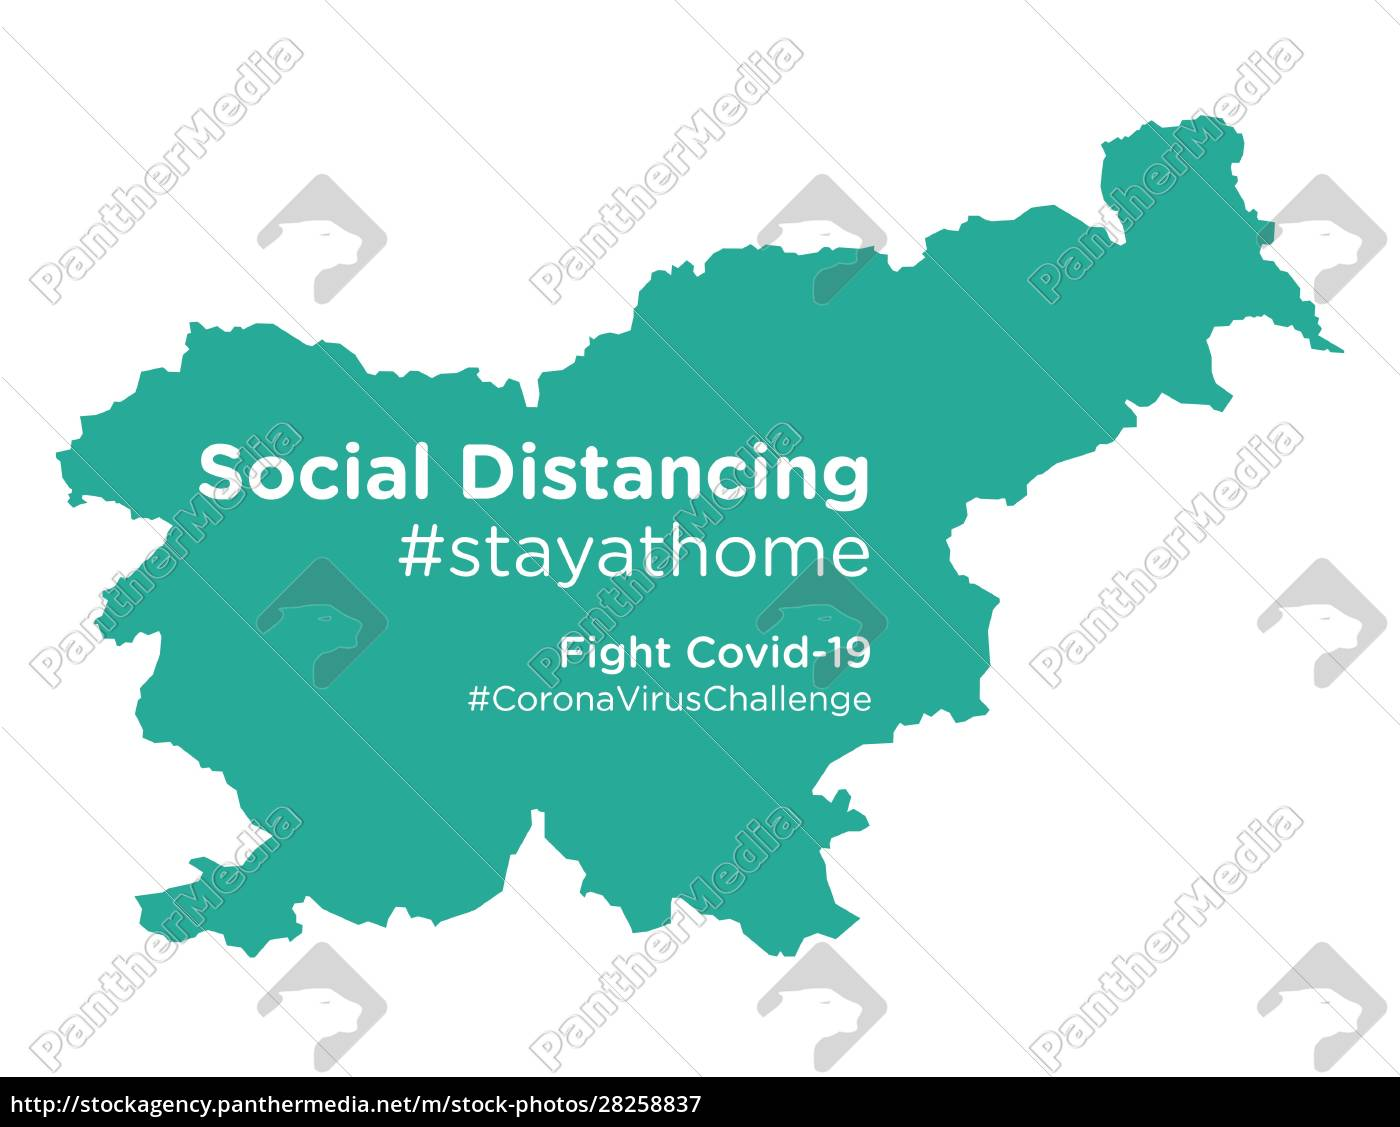 slovenia, map, with, social, distancing, stayathome - 28258837